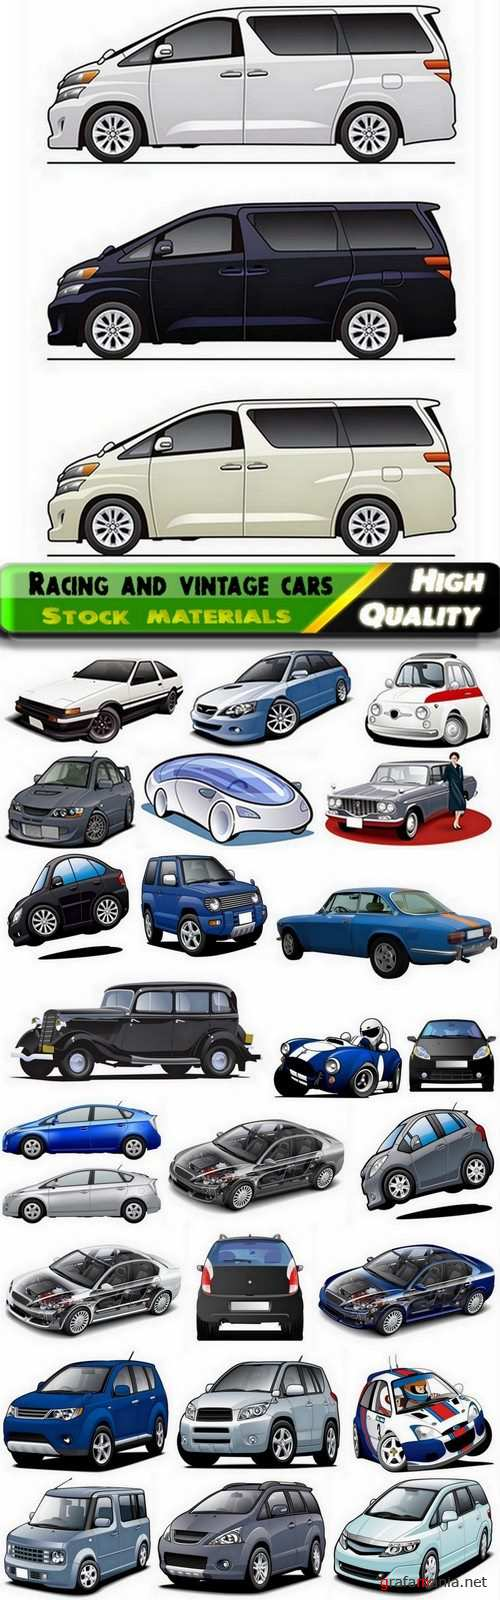 Cars racing and vintage cars illustrations - 25 HQ Jpg